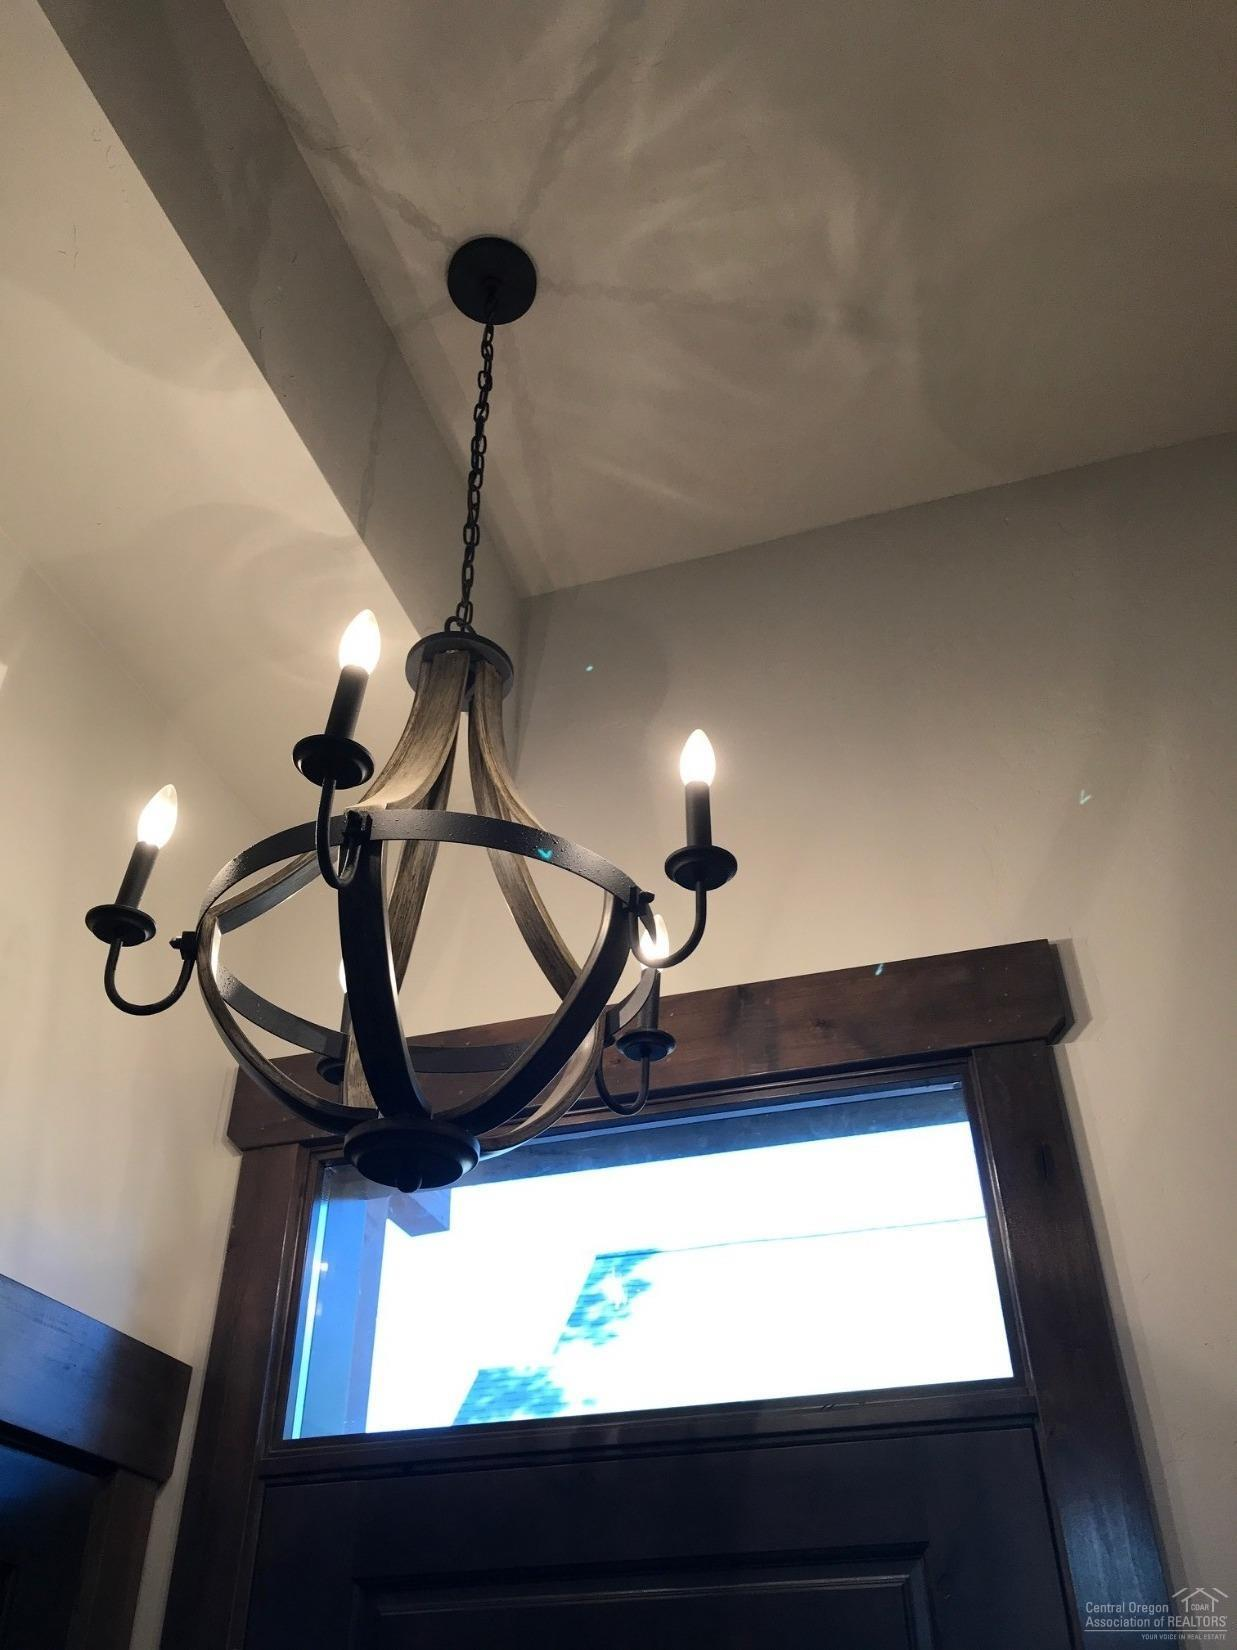 Everyone loves this chandelier in the entryway - p